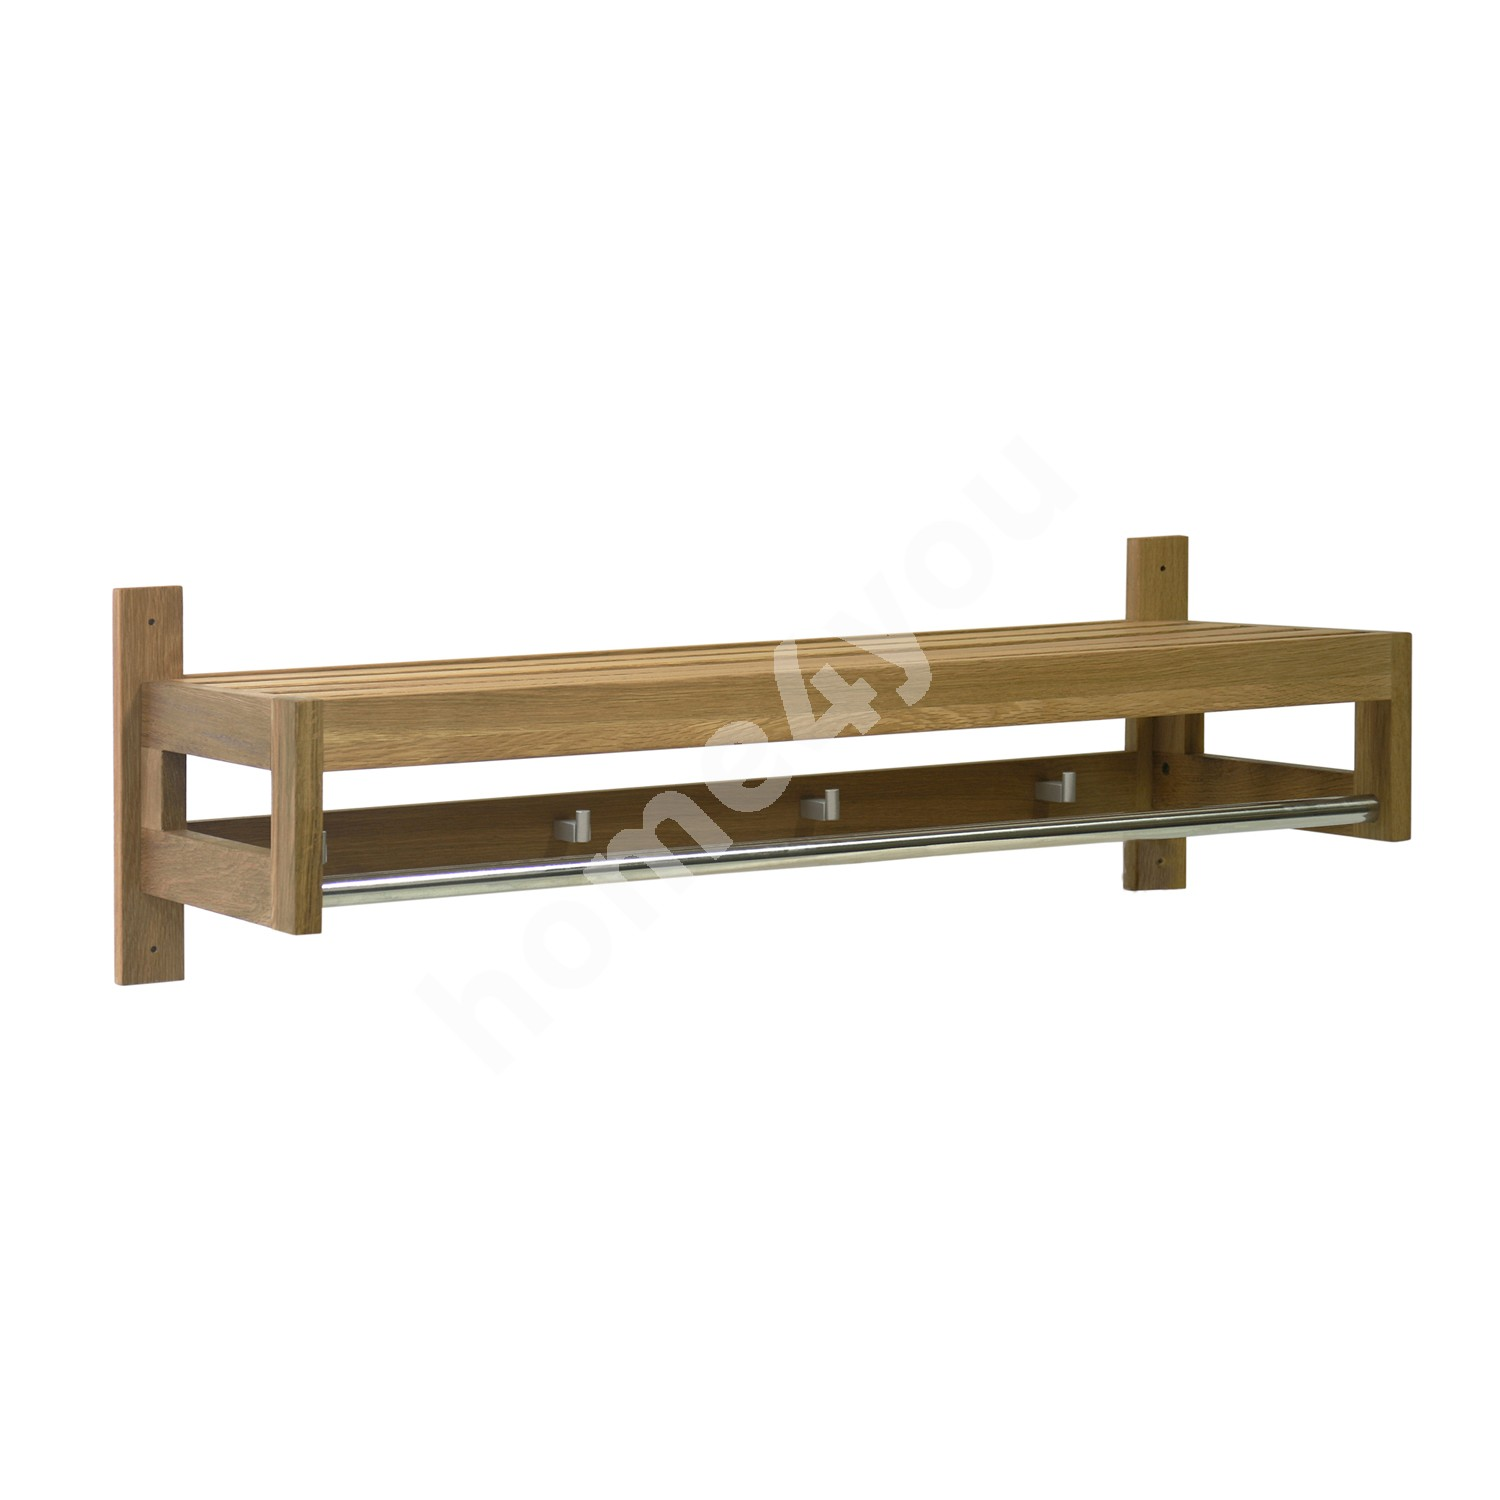 Hallway self MONDEO 82xD32xH26cm, wood: oak, finish: oiled